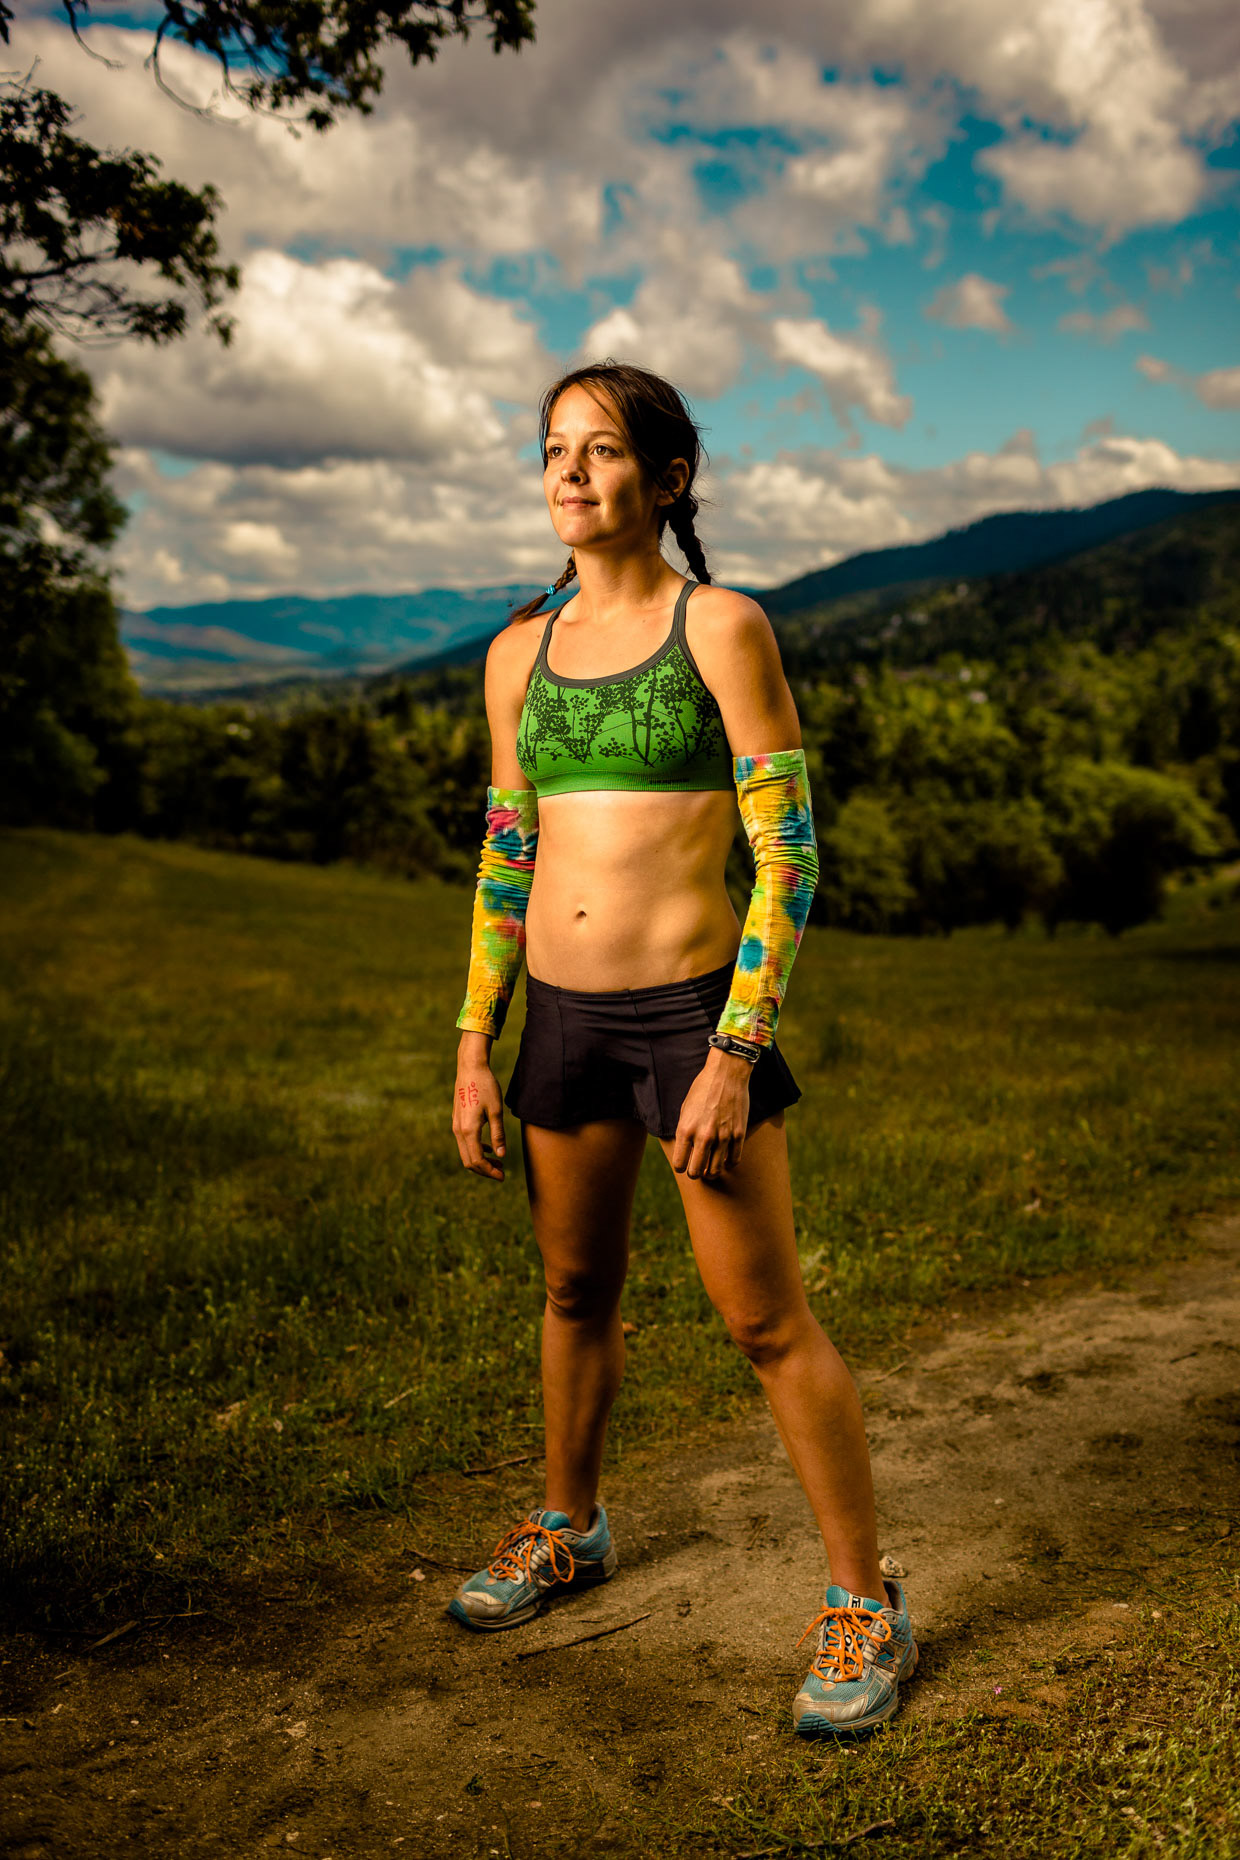 Full body environmental portrait of Ultramarathon runner Jenn Shelton on the trail in Medford, Oregon by Andy Batt